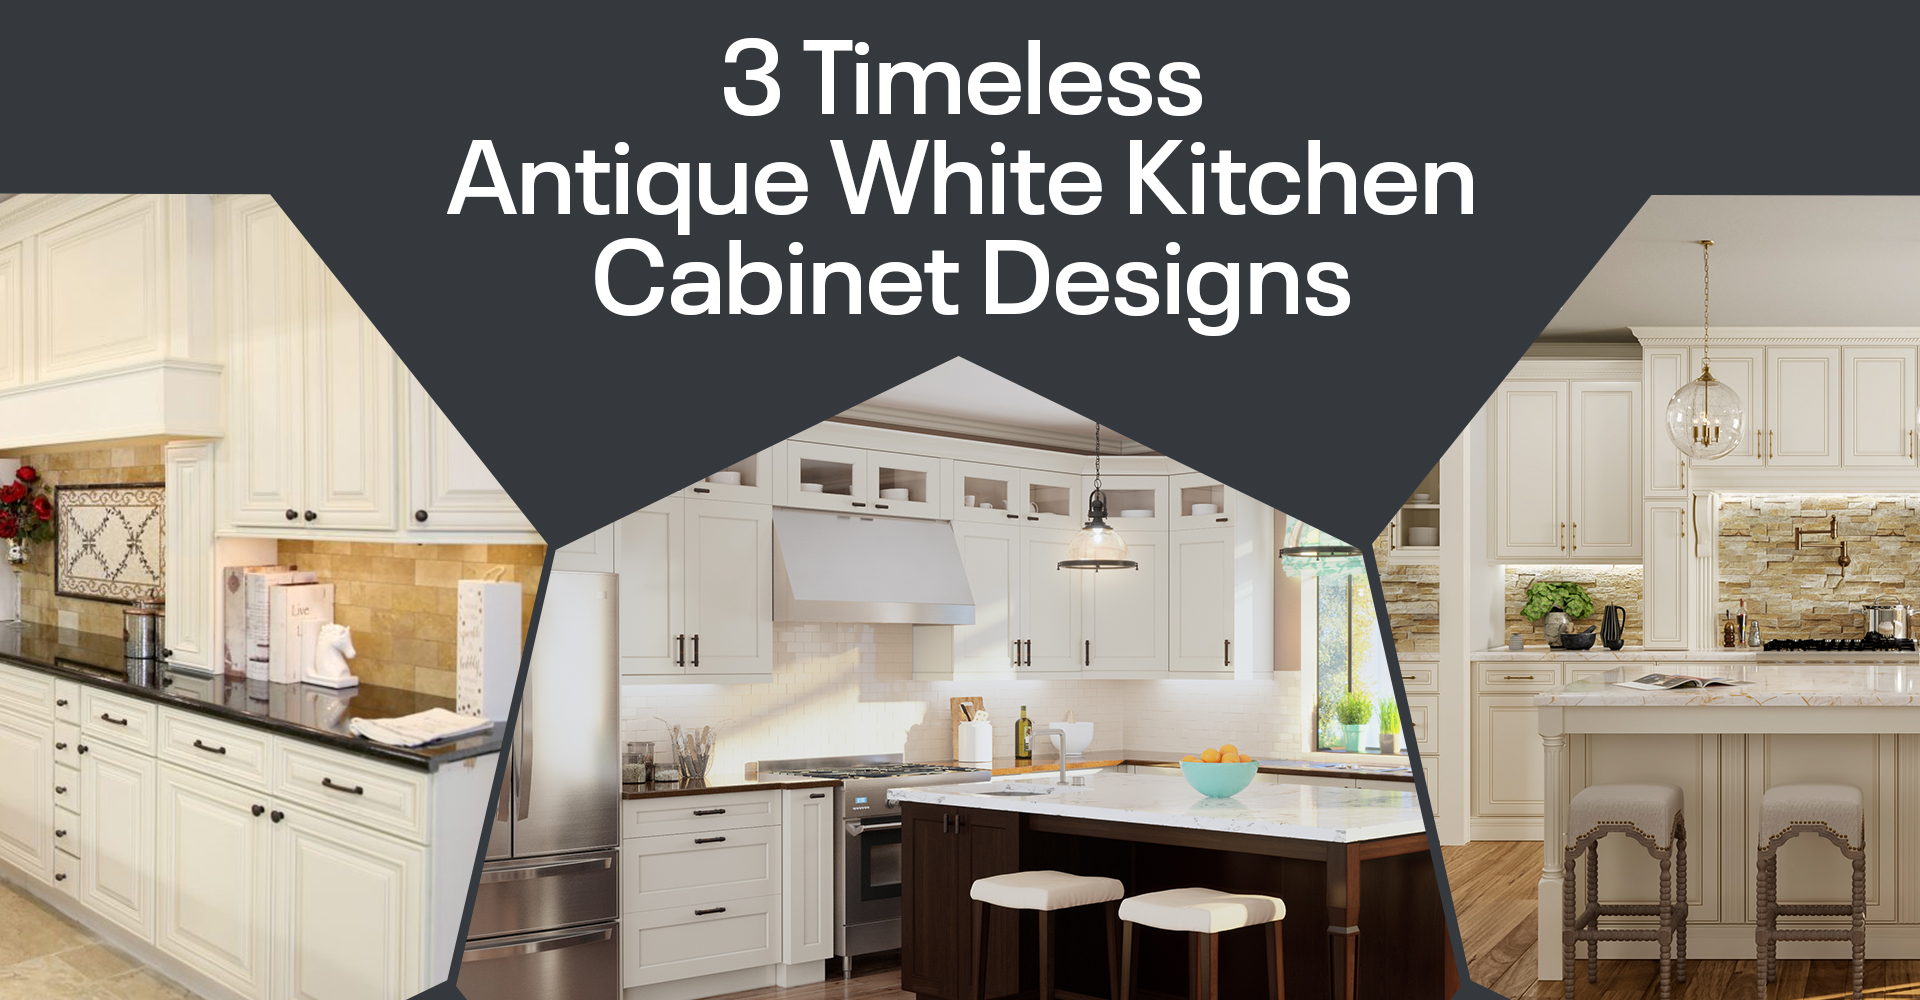 3 Timeless Antique White Kitchen Cabinet Designs